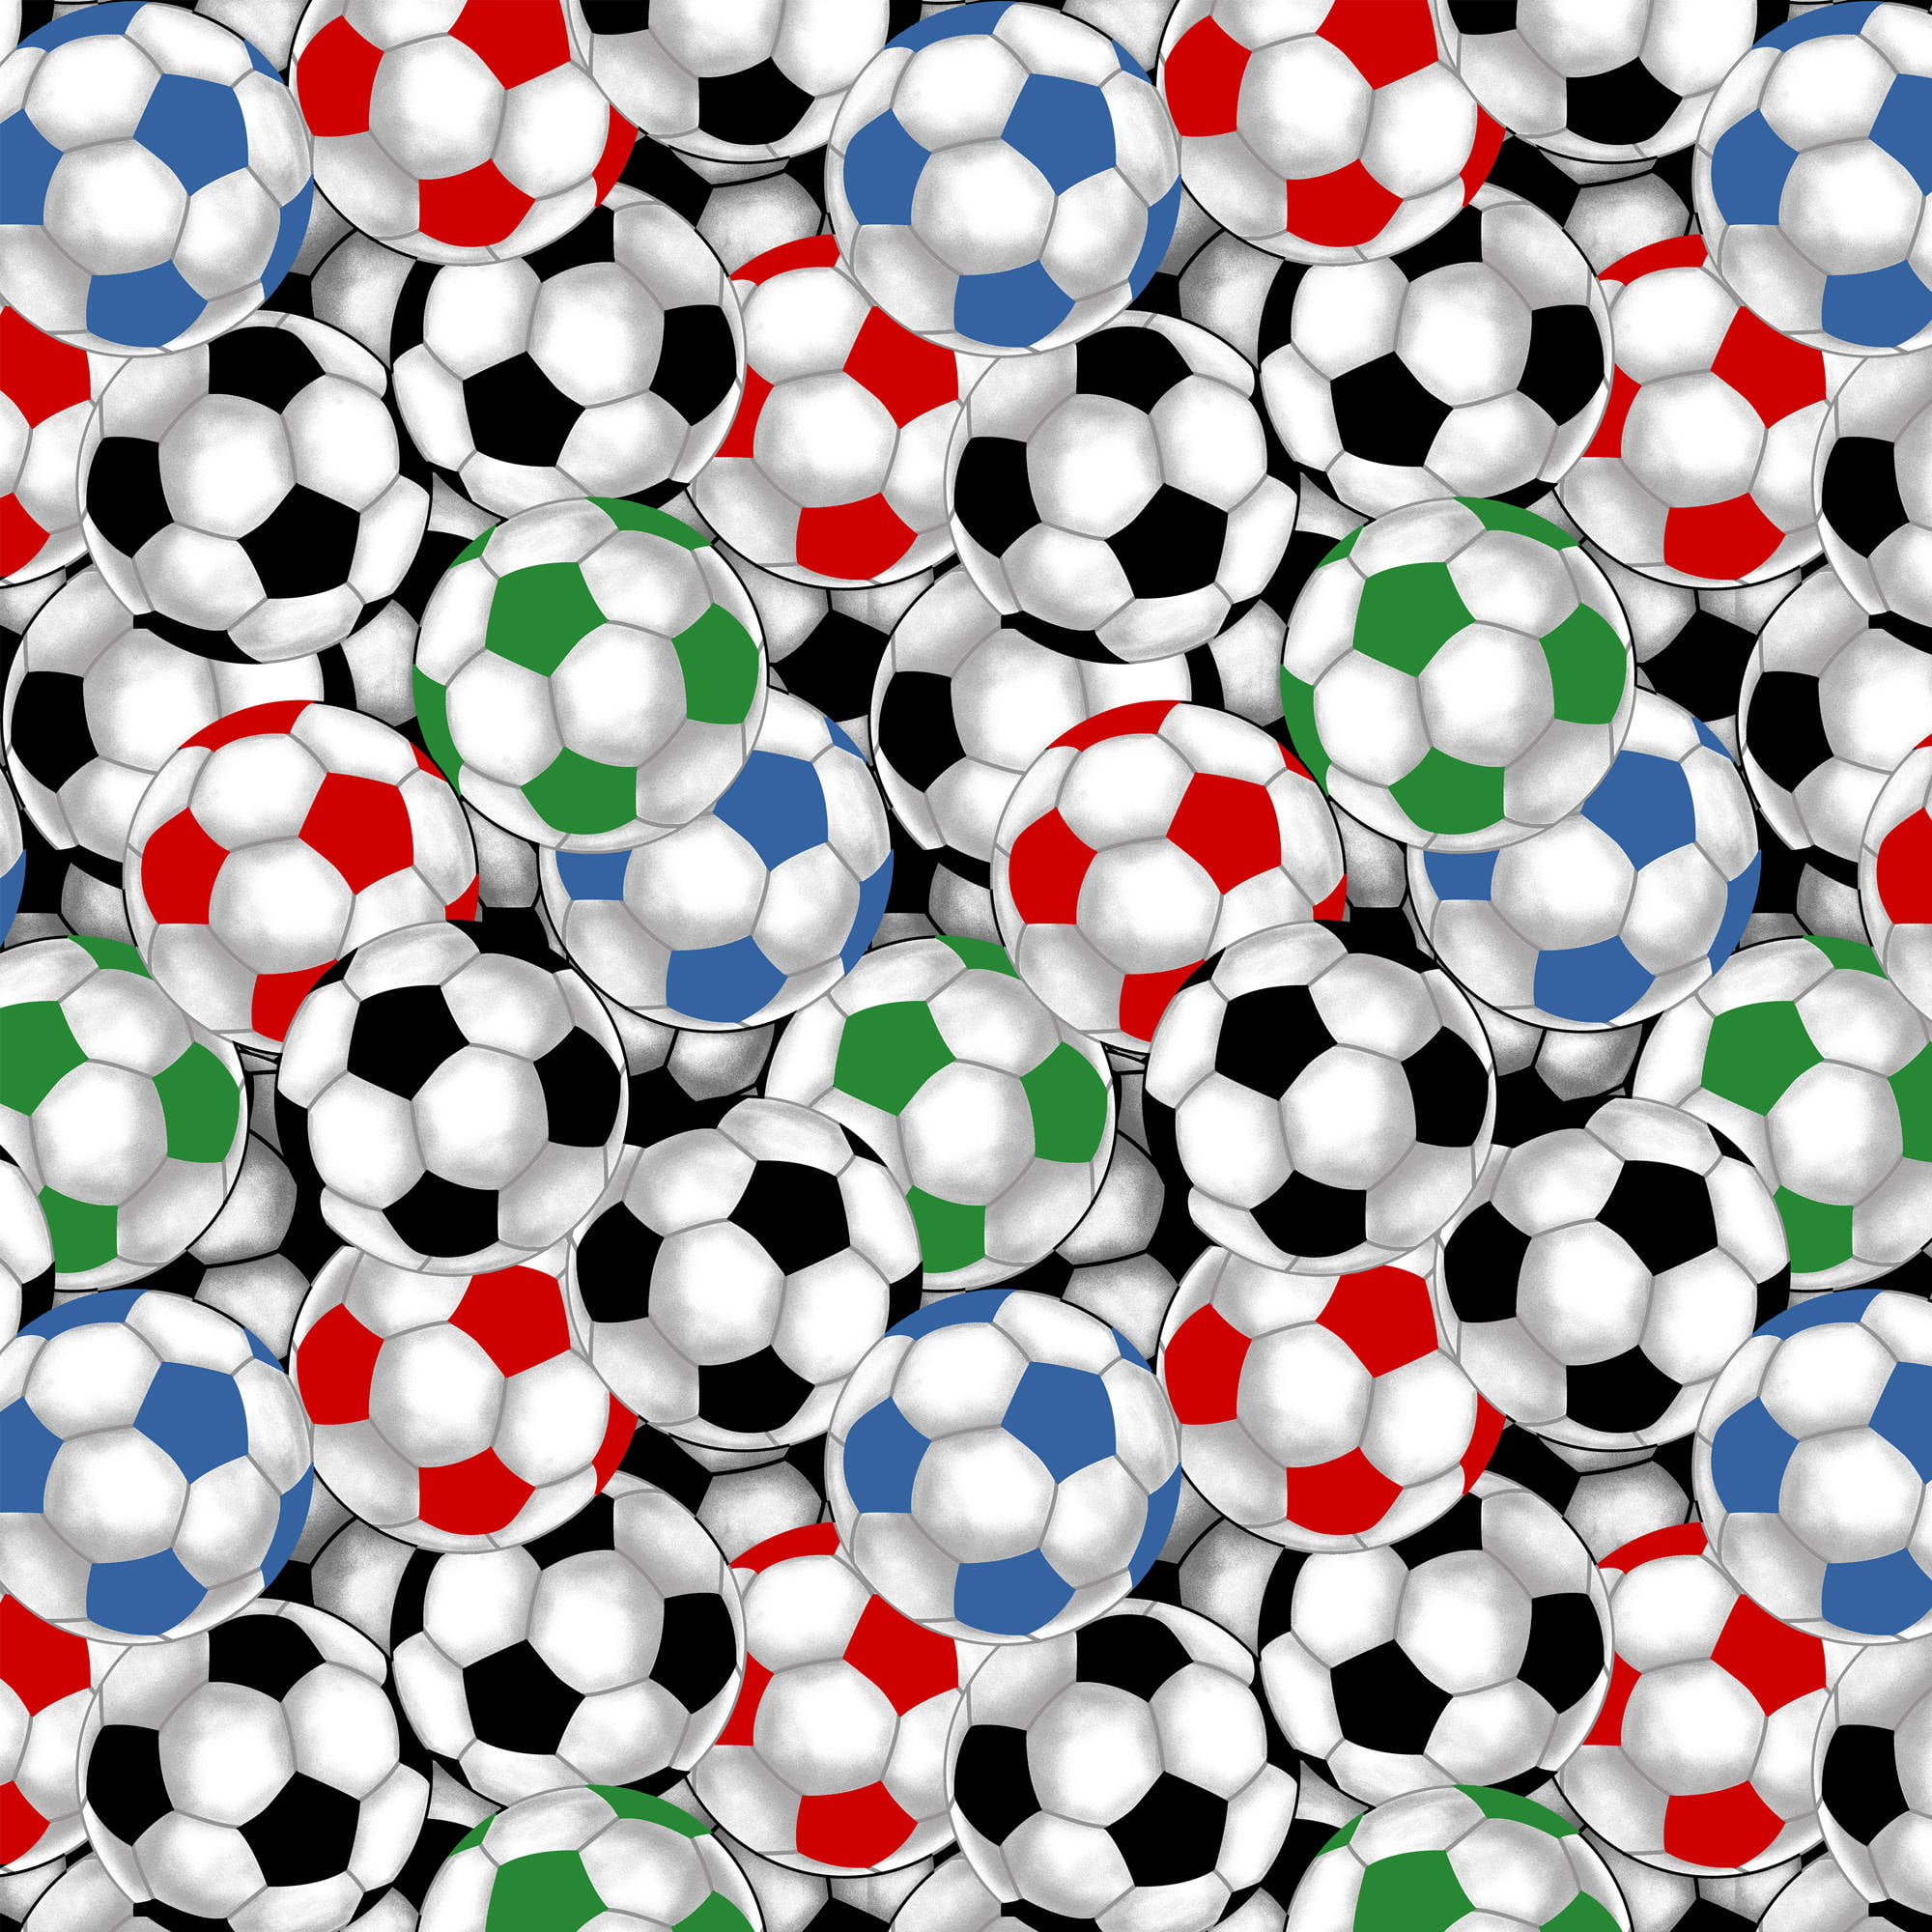 "Packed Soccer Balls Quilting Cotton Fabric By The Yard, 44"" by David Textiles, Inc."